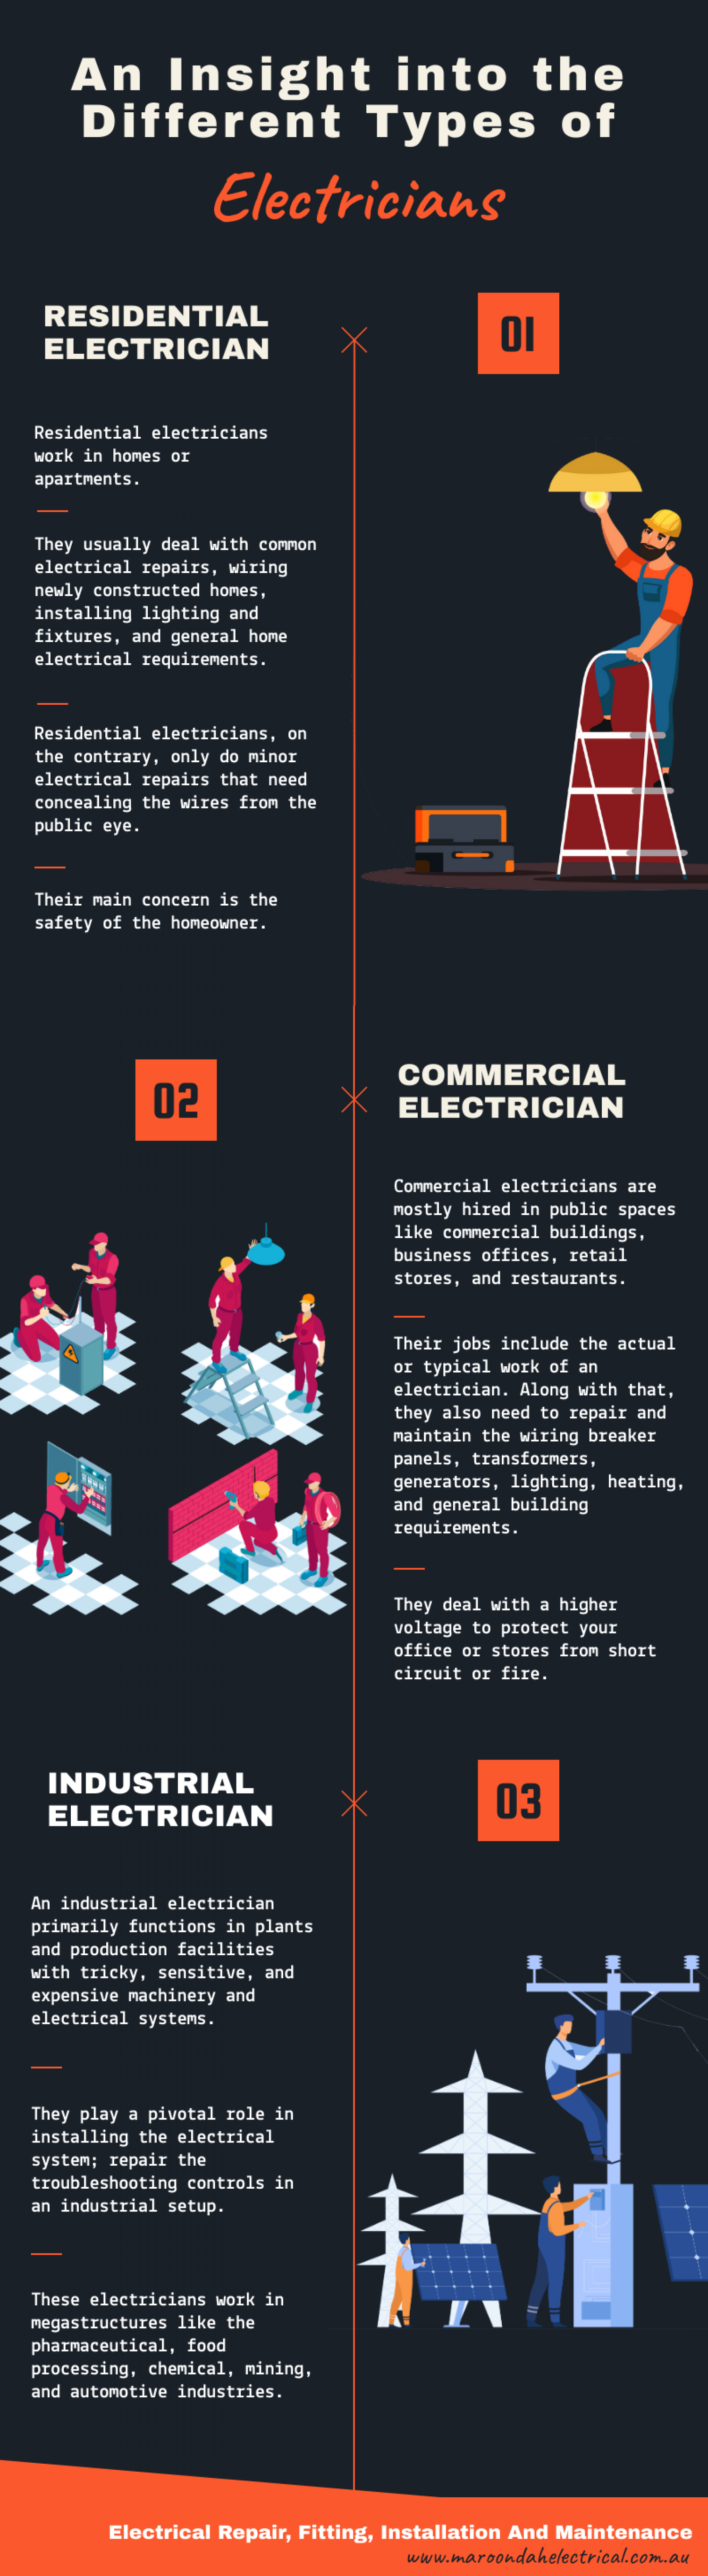 An Insight Into the Different Types of Electricians Infographic